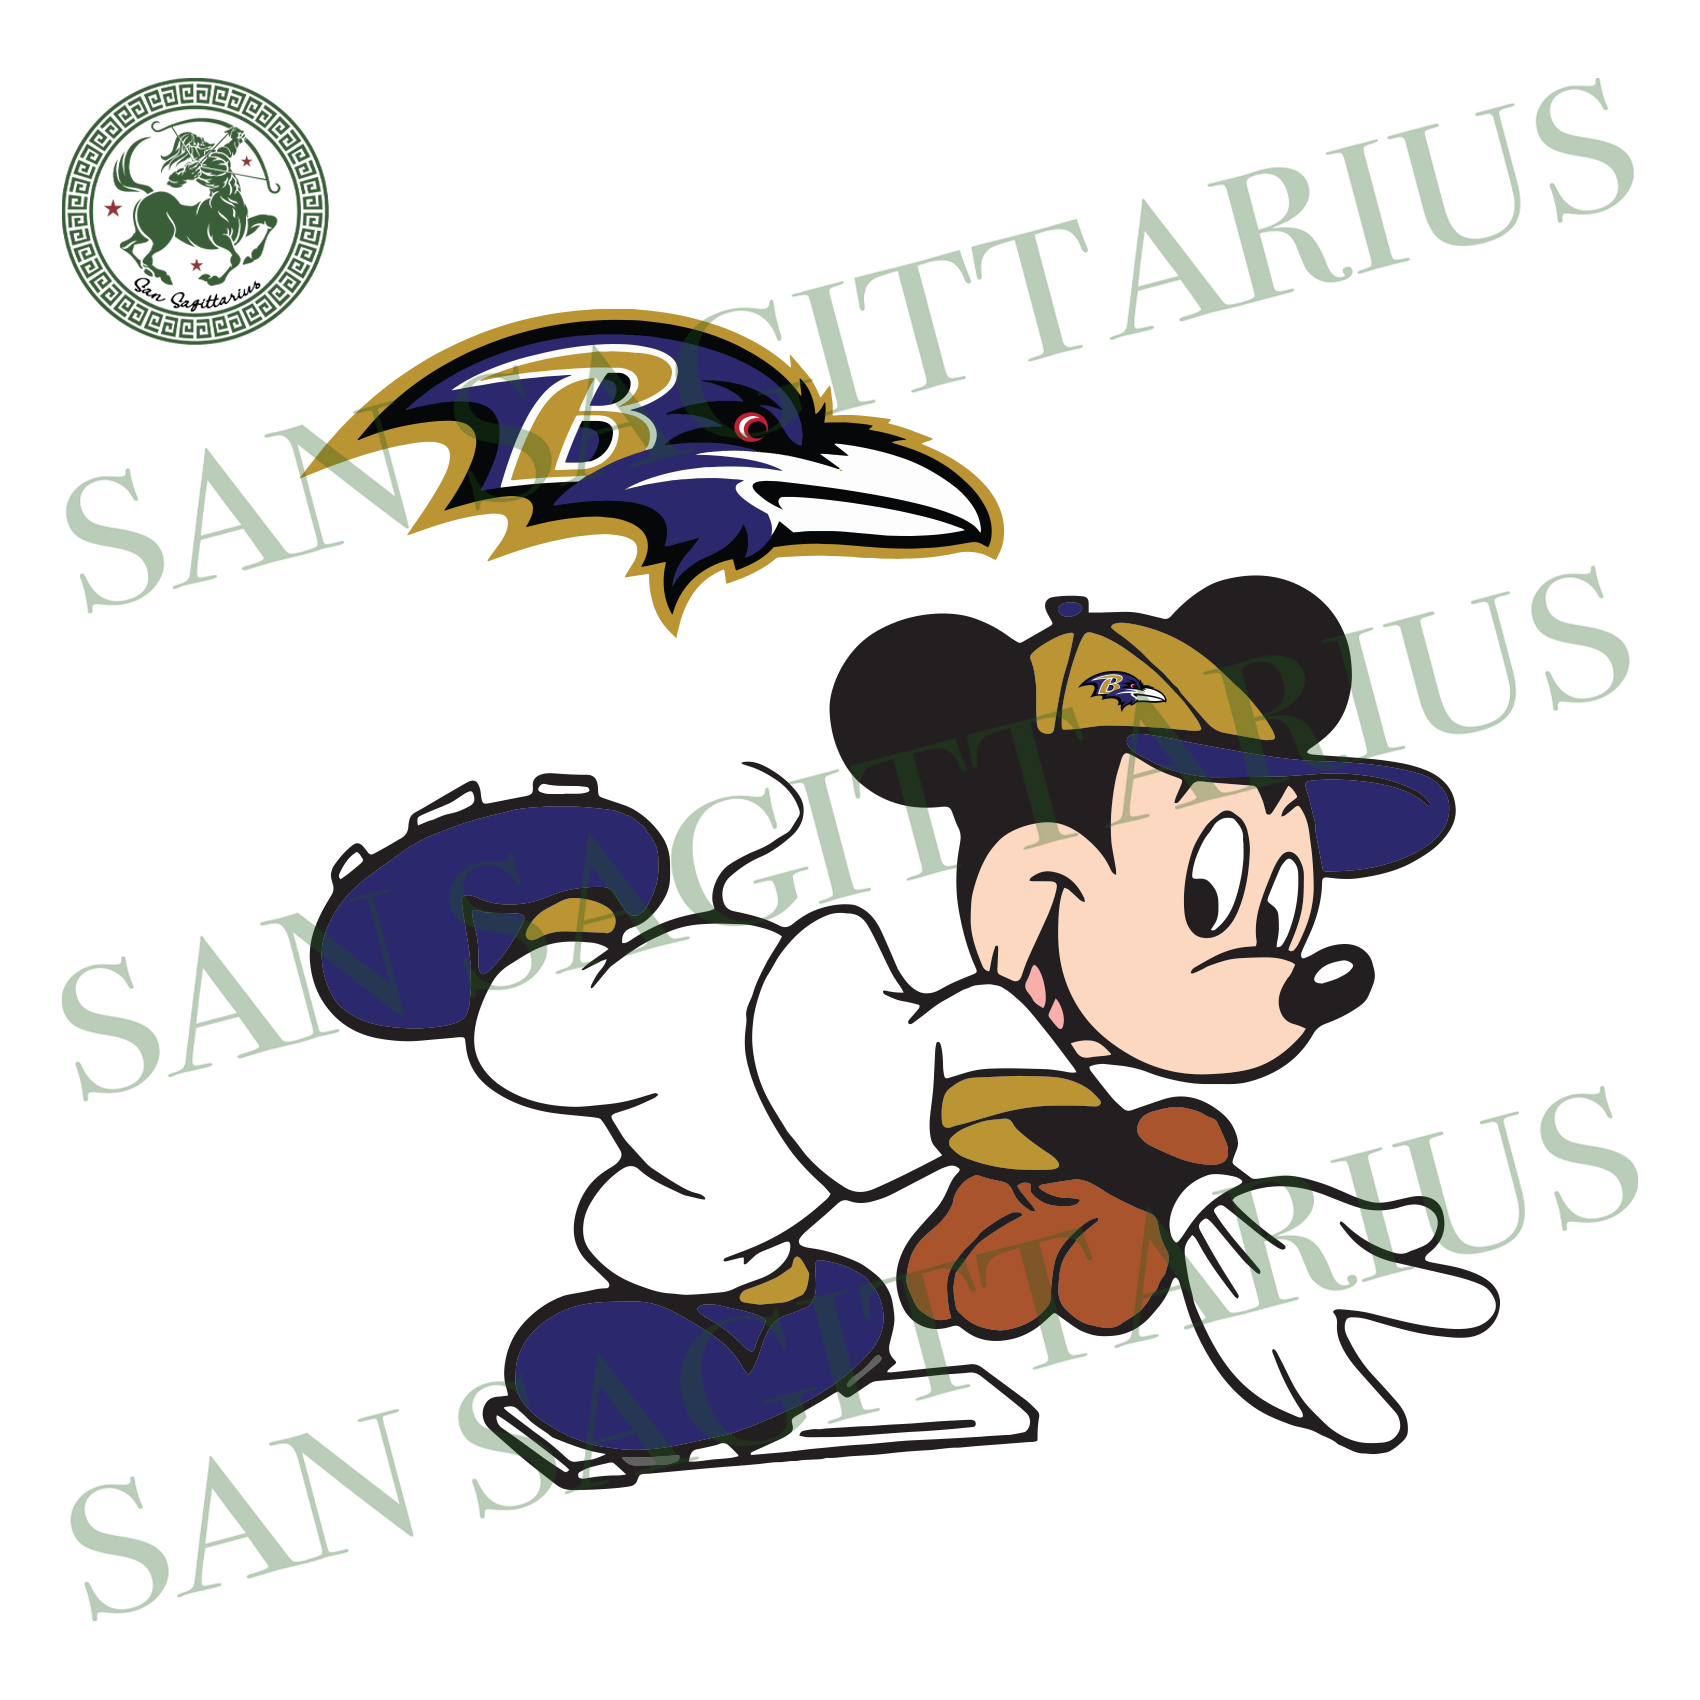 Baltimore Ravens Logo And Mickey, Sport Svg, NFL Football Svg, NFL Svg, NFL Sport, Baltimore Ravens Svg, Baltimore Ravens, Baltimore Ravens NFL Lover, Ravens NFL Svg, Football Svg